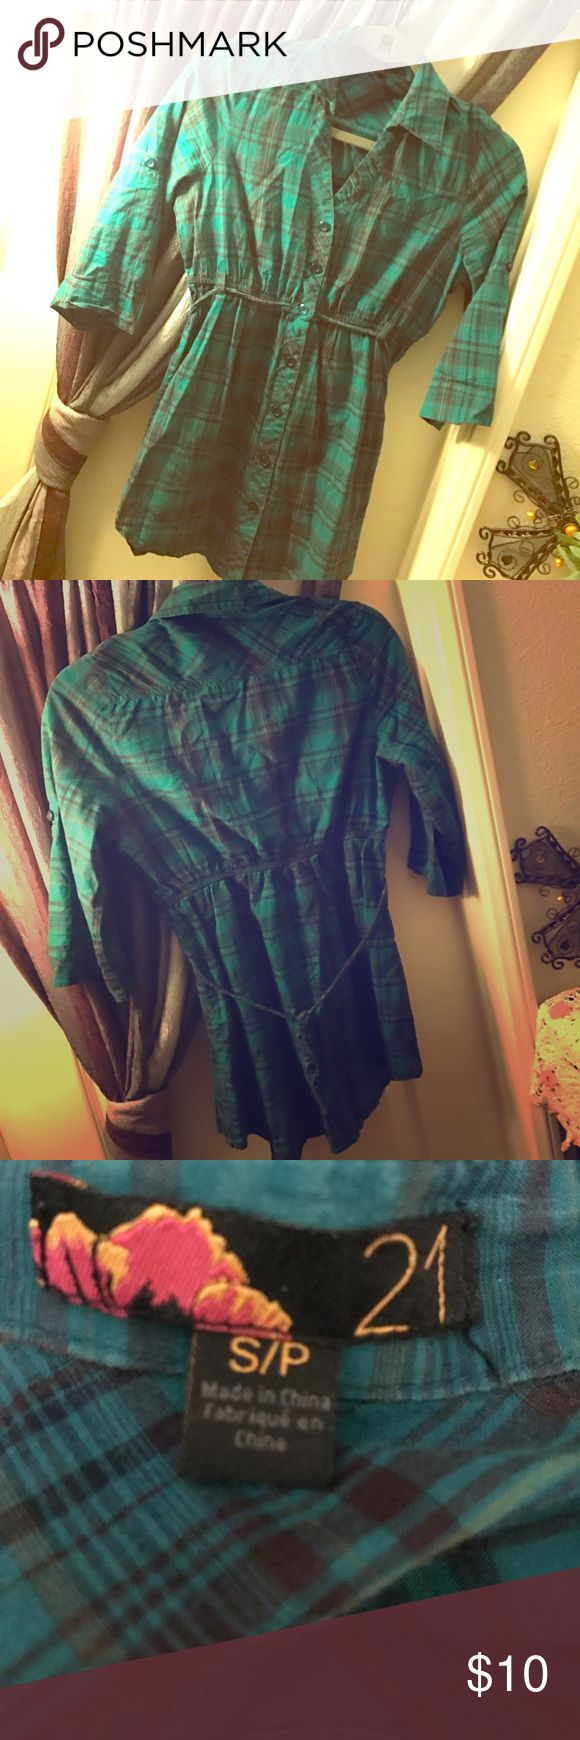 💙Cute Flannel Tunic 💚 Super cute and hardly worn! Cinched waist with an added tie around the back for added tightness! Perfect condition! Forever 21 Tops Tunics